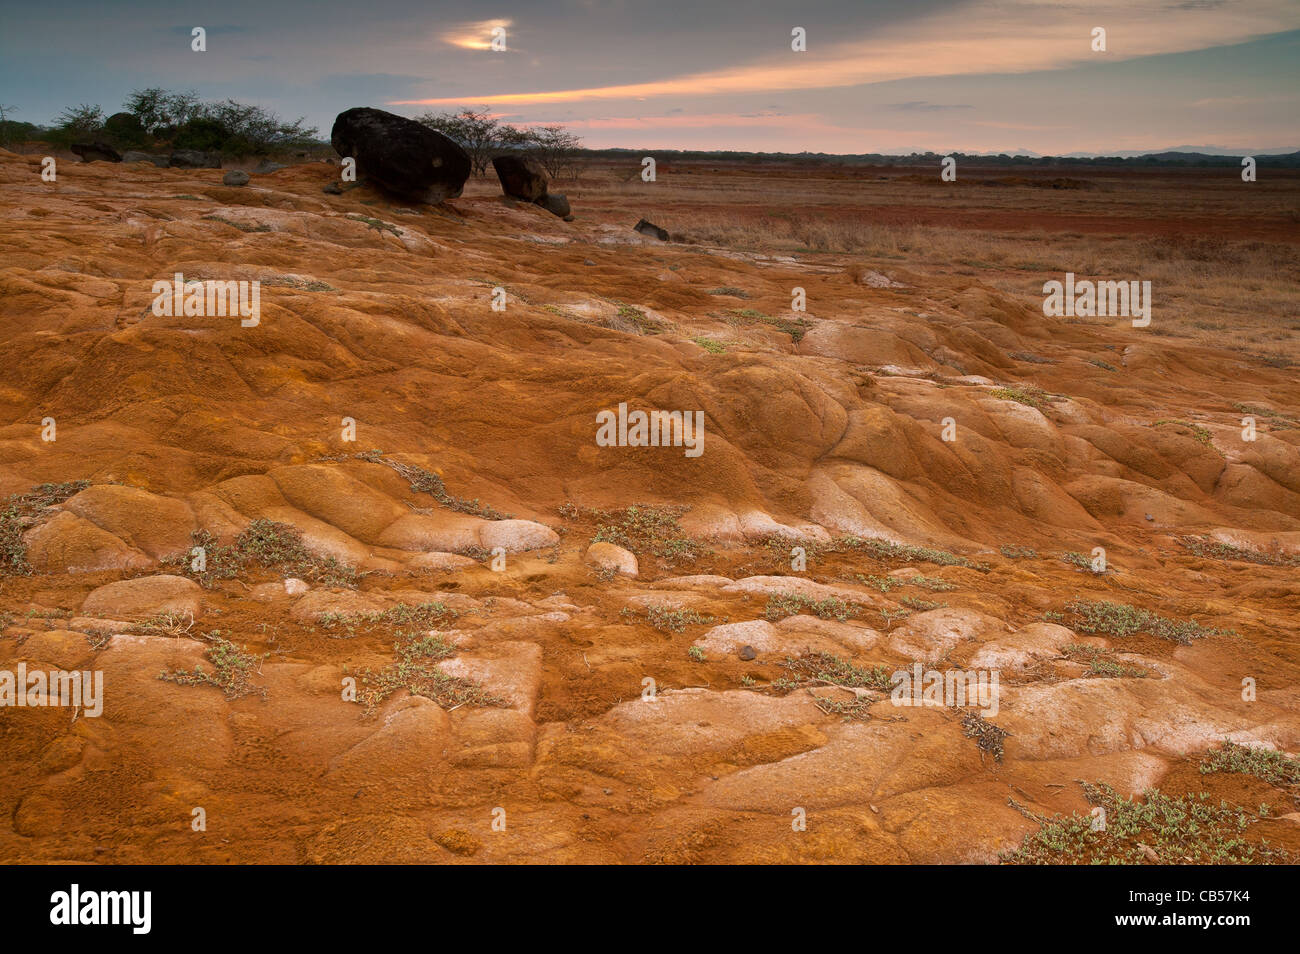 Desert landscape in Sarigua national park, Herrera province, Republic of Panama. Foto de stock